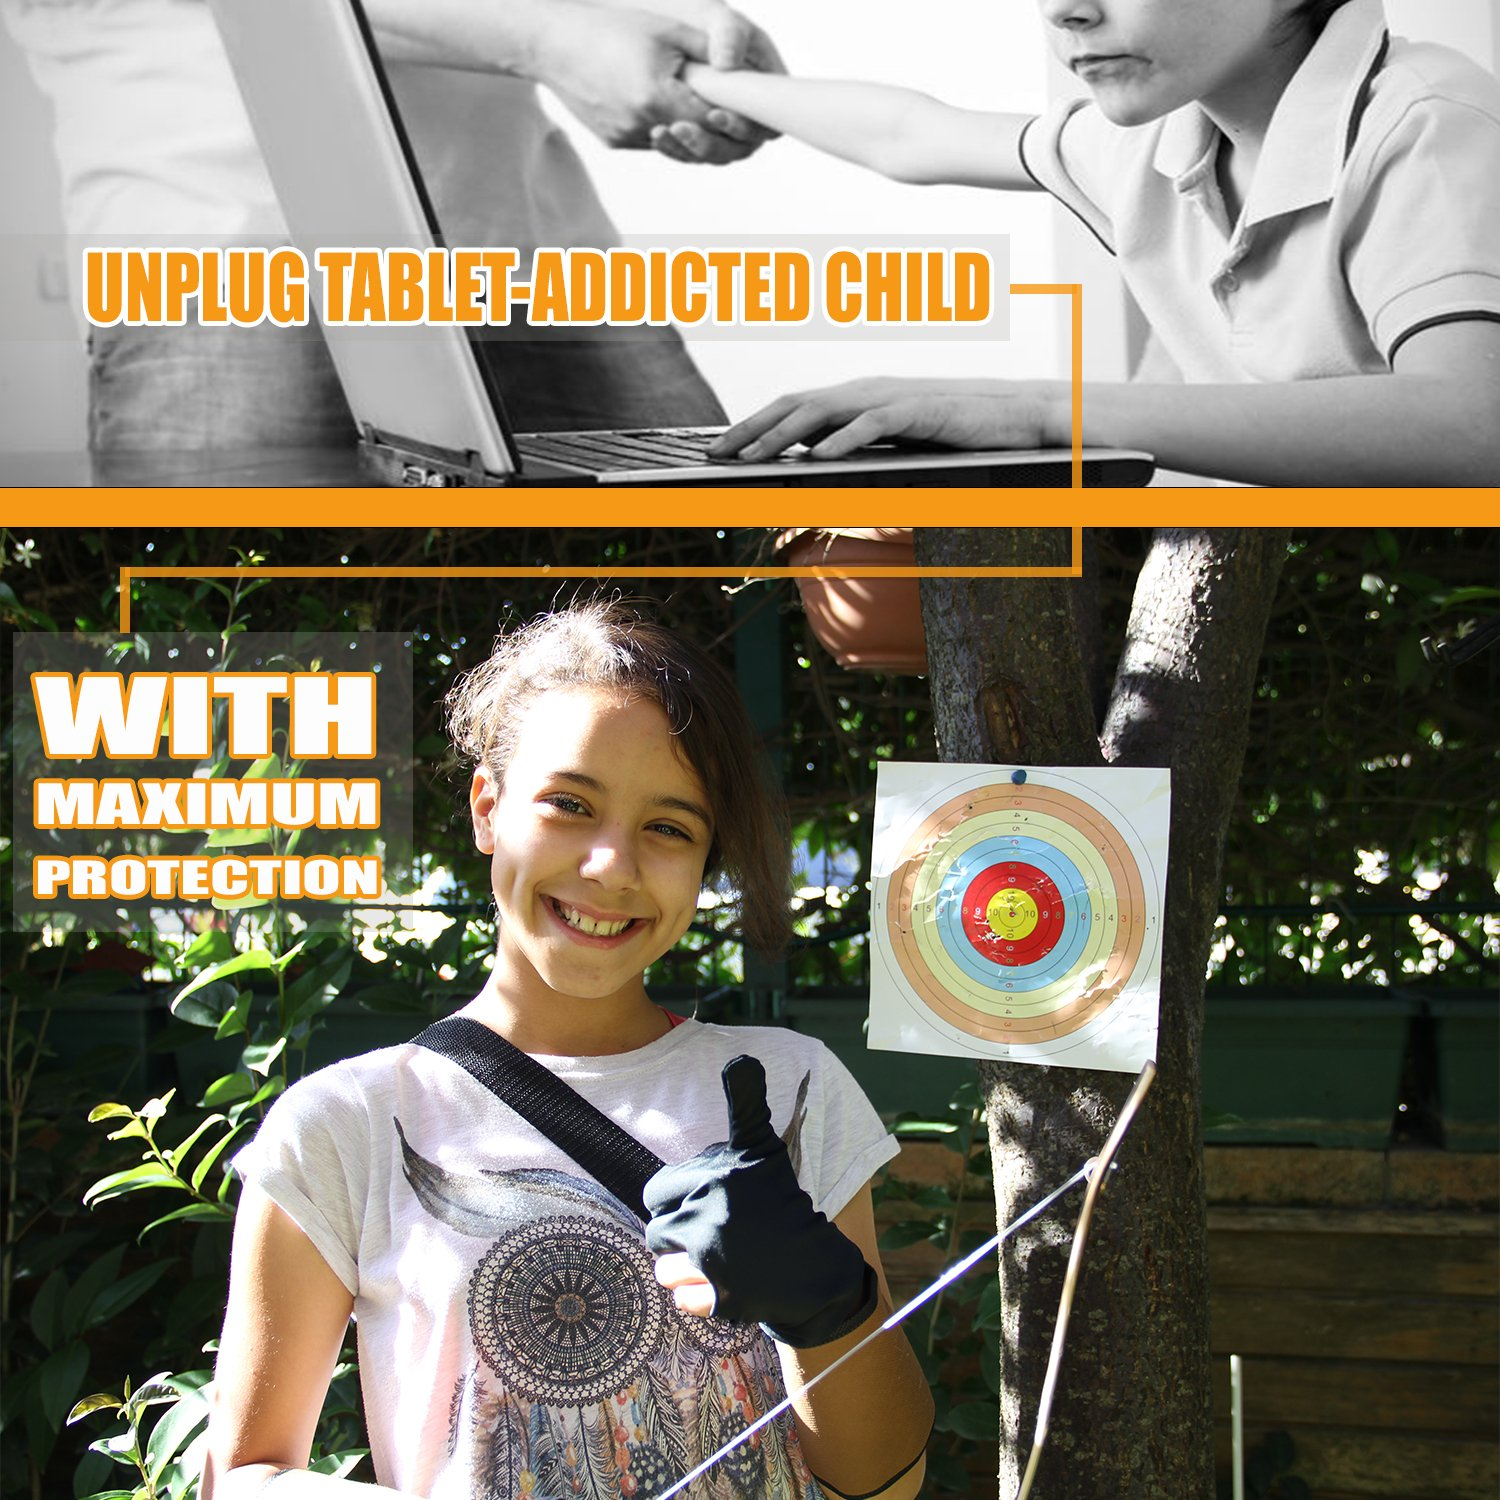 Knidose Beginners Bow Arrow Kids | 36 Pieces Safe Archery Set Outdoor Indoor Fun, Handcrafted Wooden 1 Bow, 15 Arrows, 15 Target Sheets, 1 Quiver, 2 Arm 2 Finger Guards Shooting Toy by Knidose (Image #5)